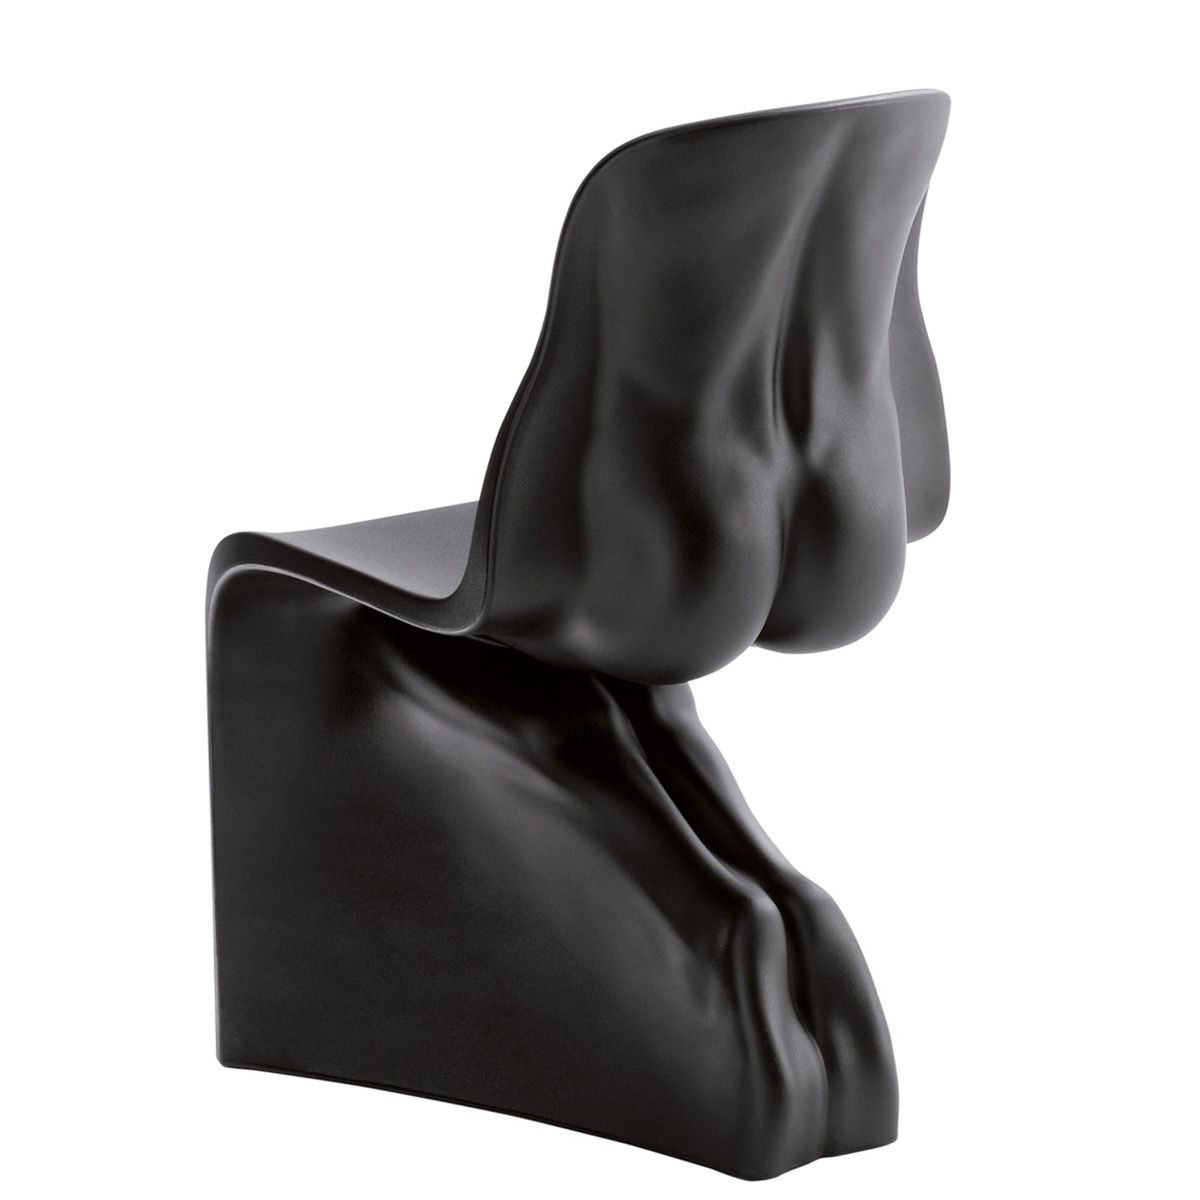 Panton Chair Günstig Him Chair Black Allen Jones | Stühle, Panton Chair, Schwarz